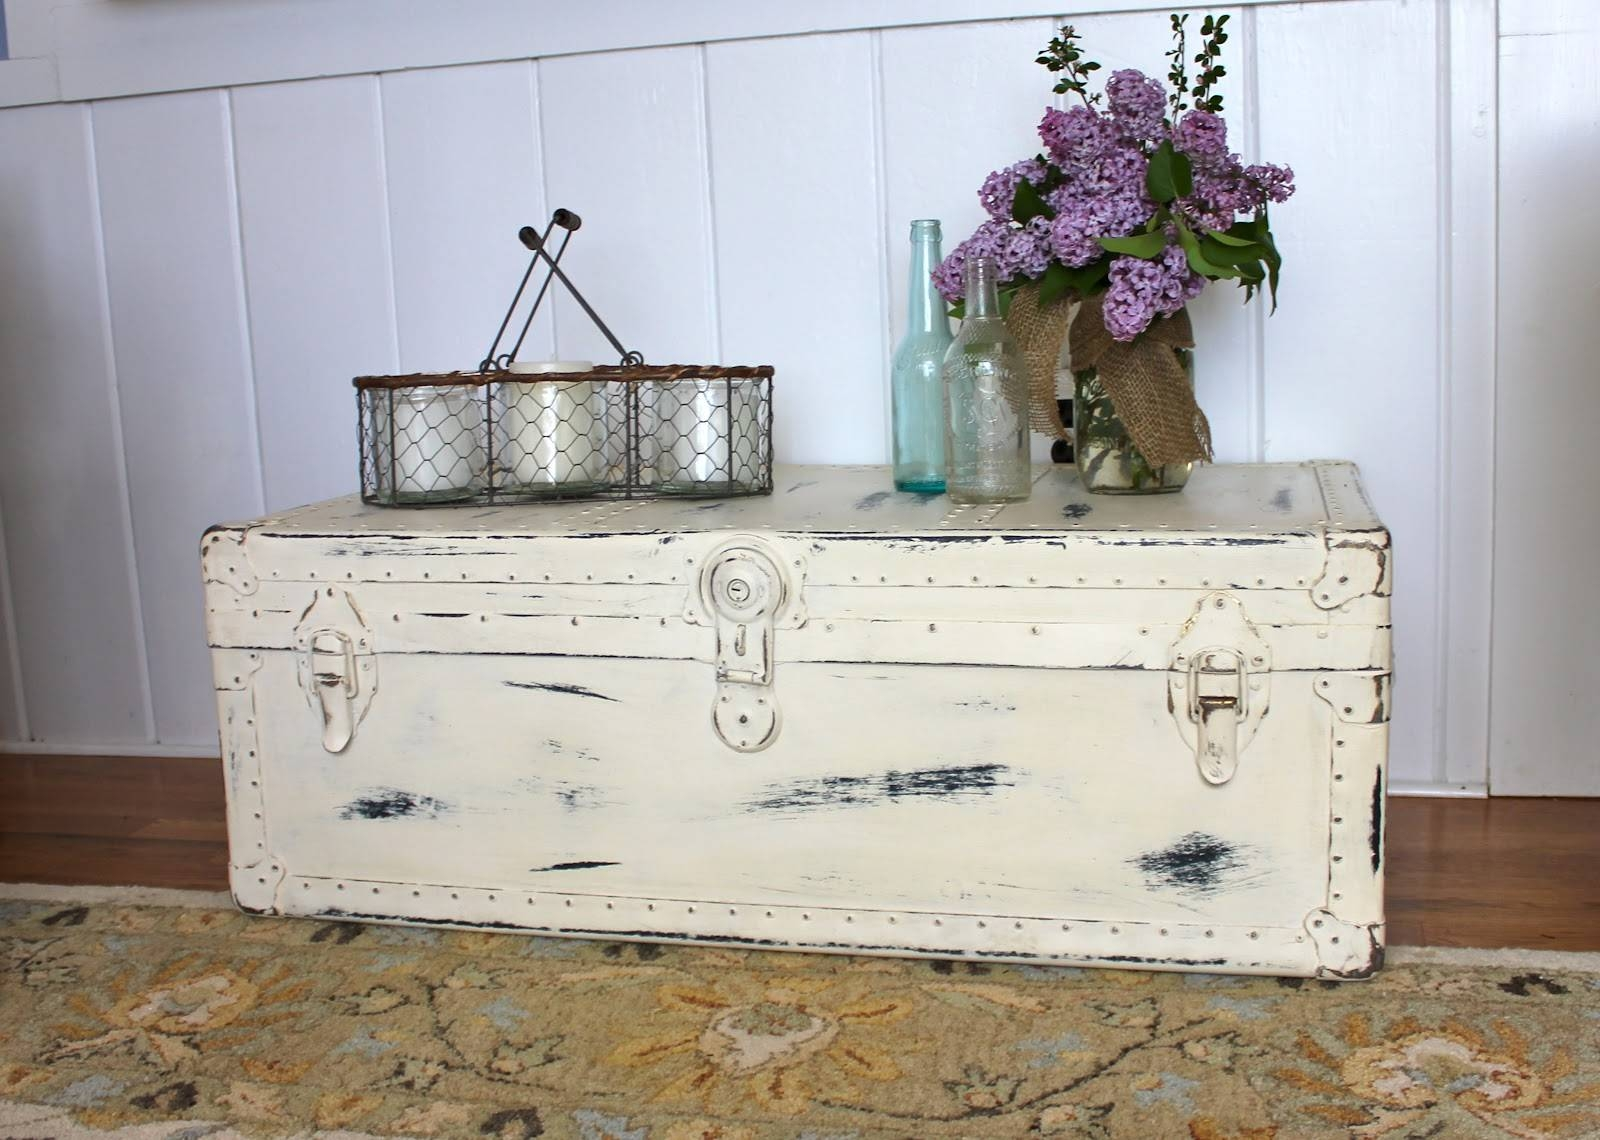 My Passion For Decor: Neglected Steamer Trunk Makeover for Old Trunks As Coffee Tables (Image 18 of 30)